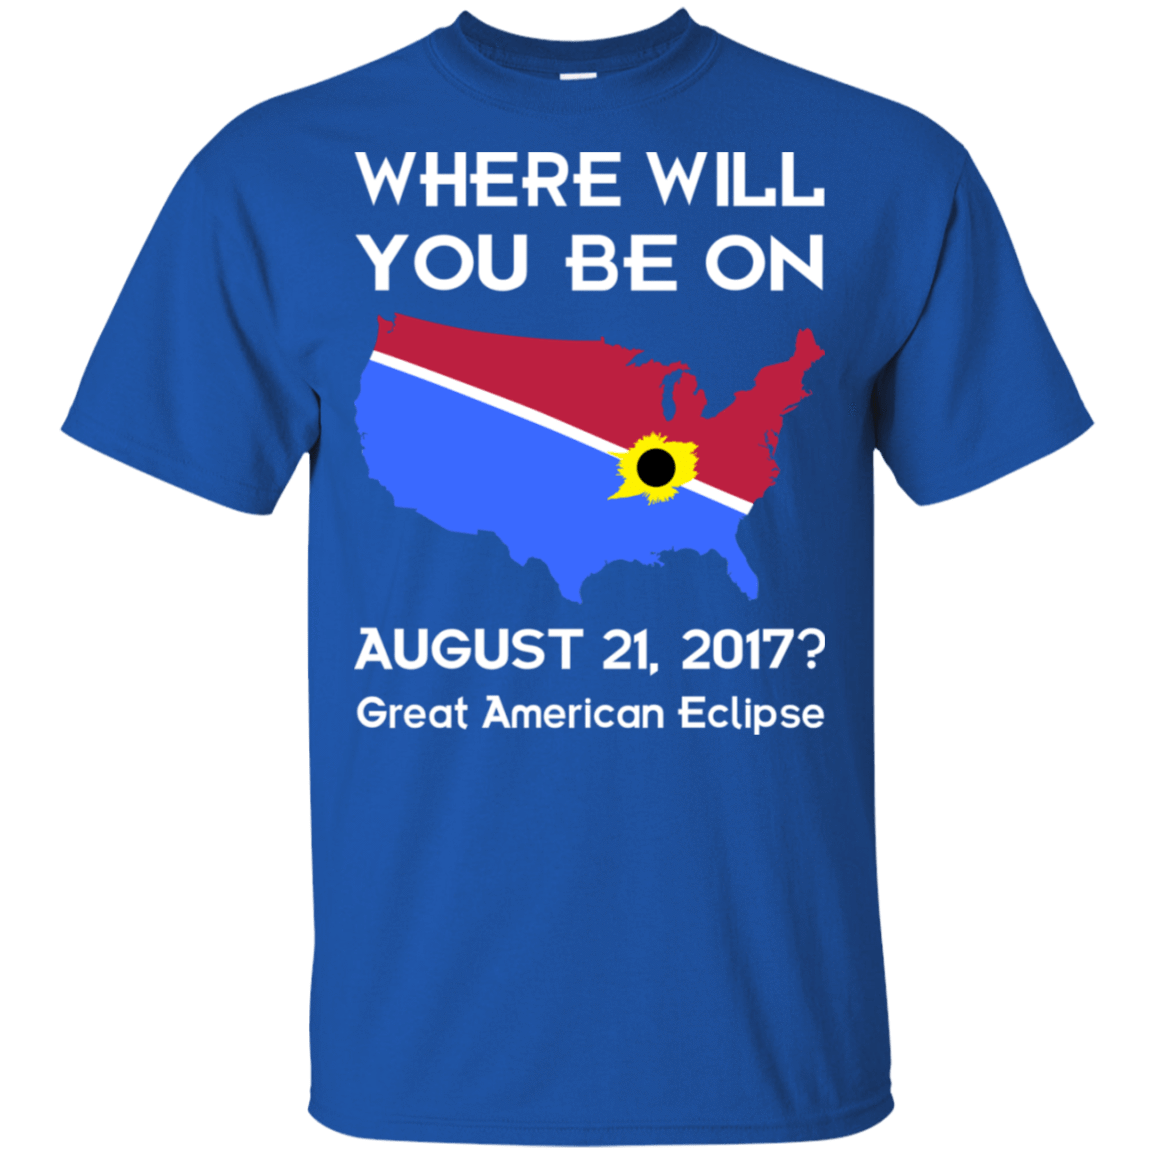 Solar Eclipse 2017: Where Will You Be On August 21 2017 22-110-72772488-249 - Tee Ript